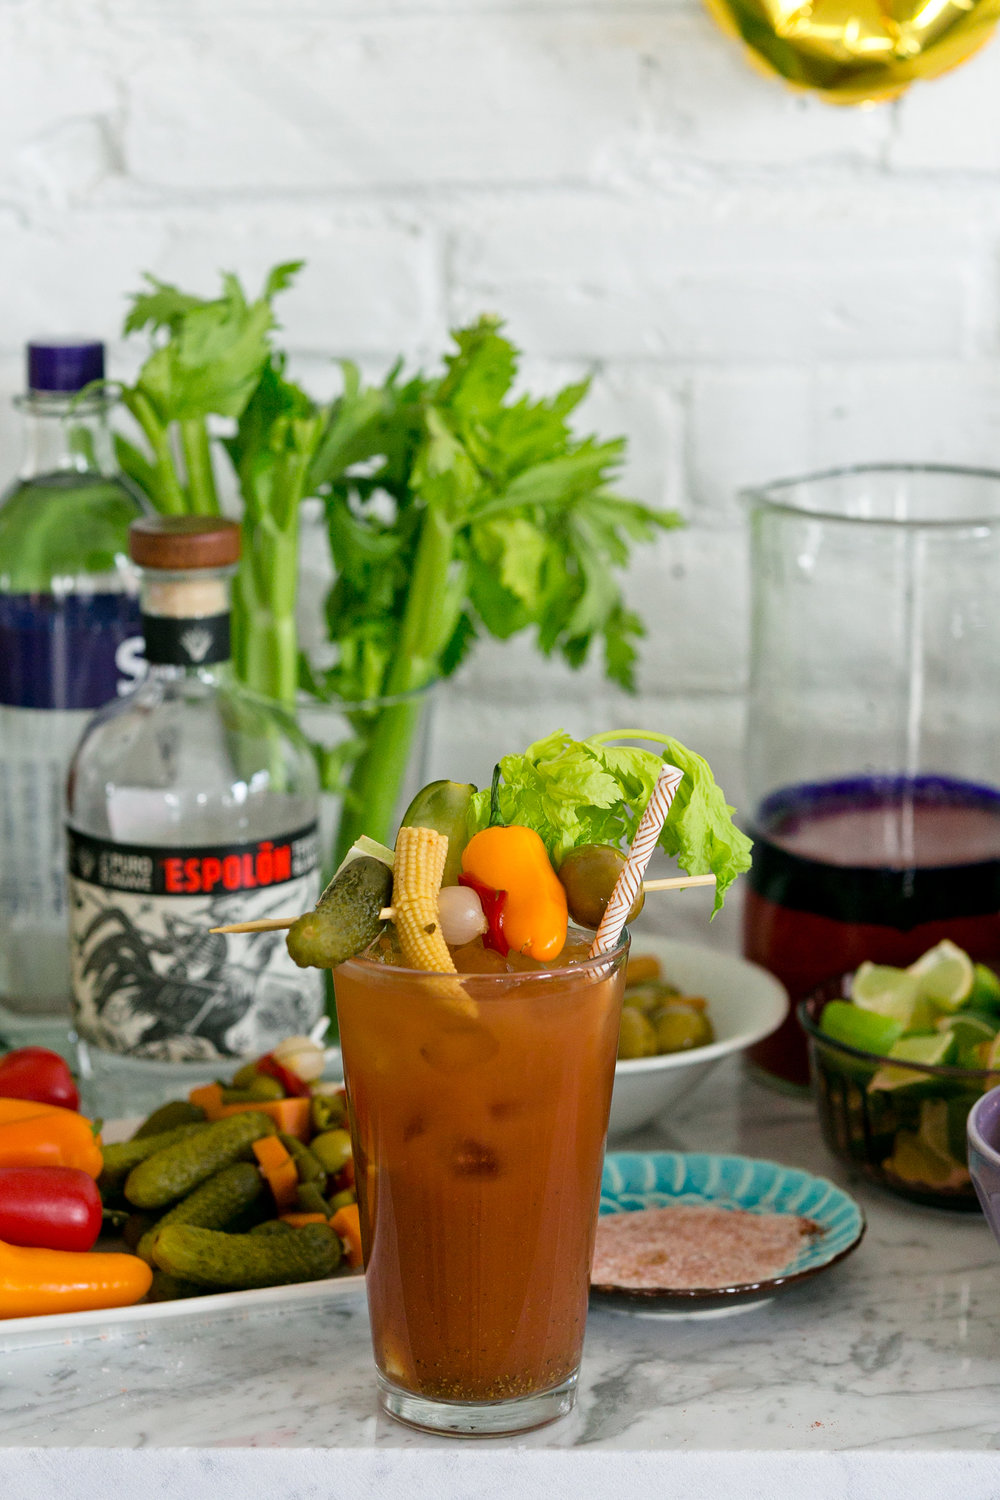 Bloody Mary Bar from Galentine's Brunch from the Unusually Lovely blog.